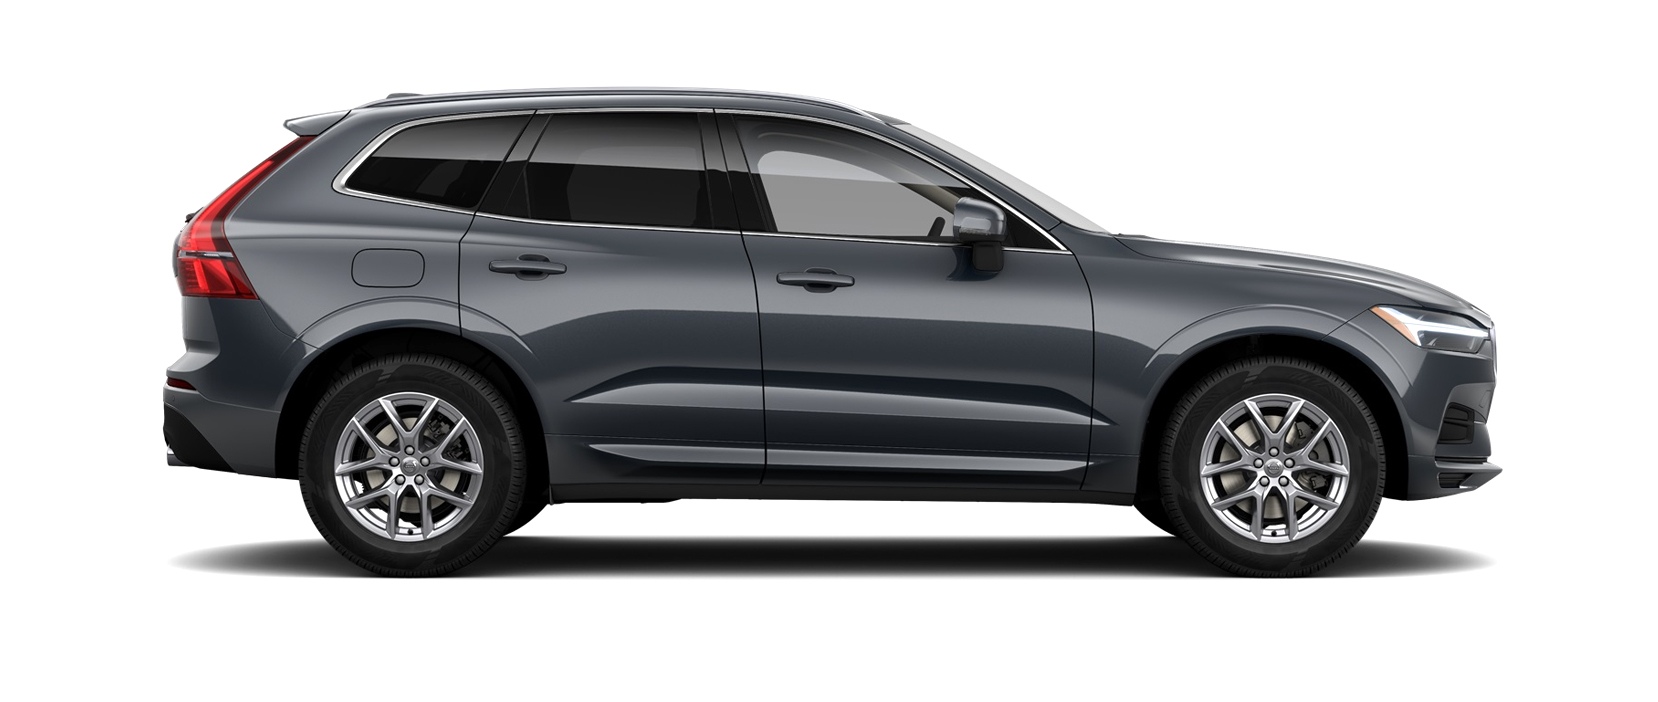 2020 Volvo XC60 T5 Momentum AWD shown